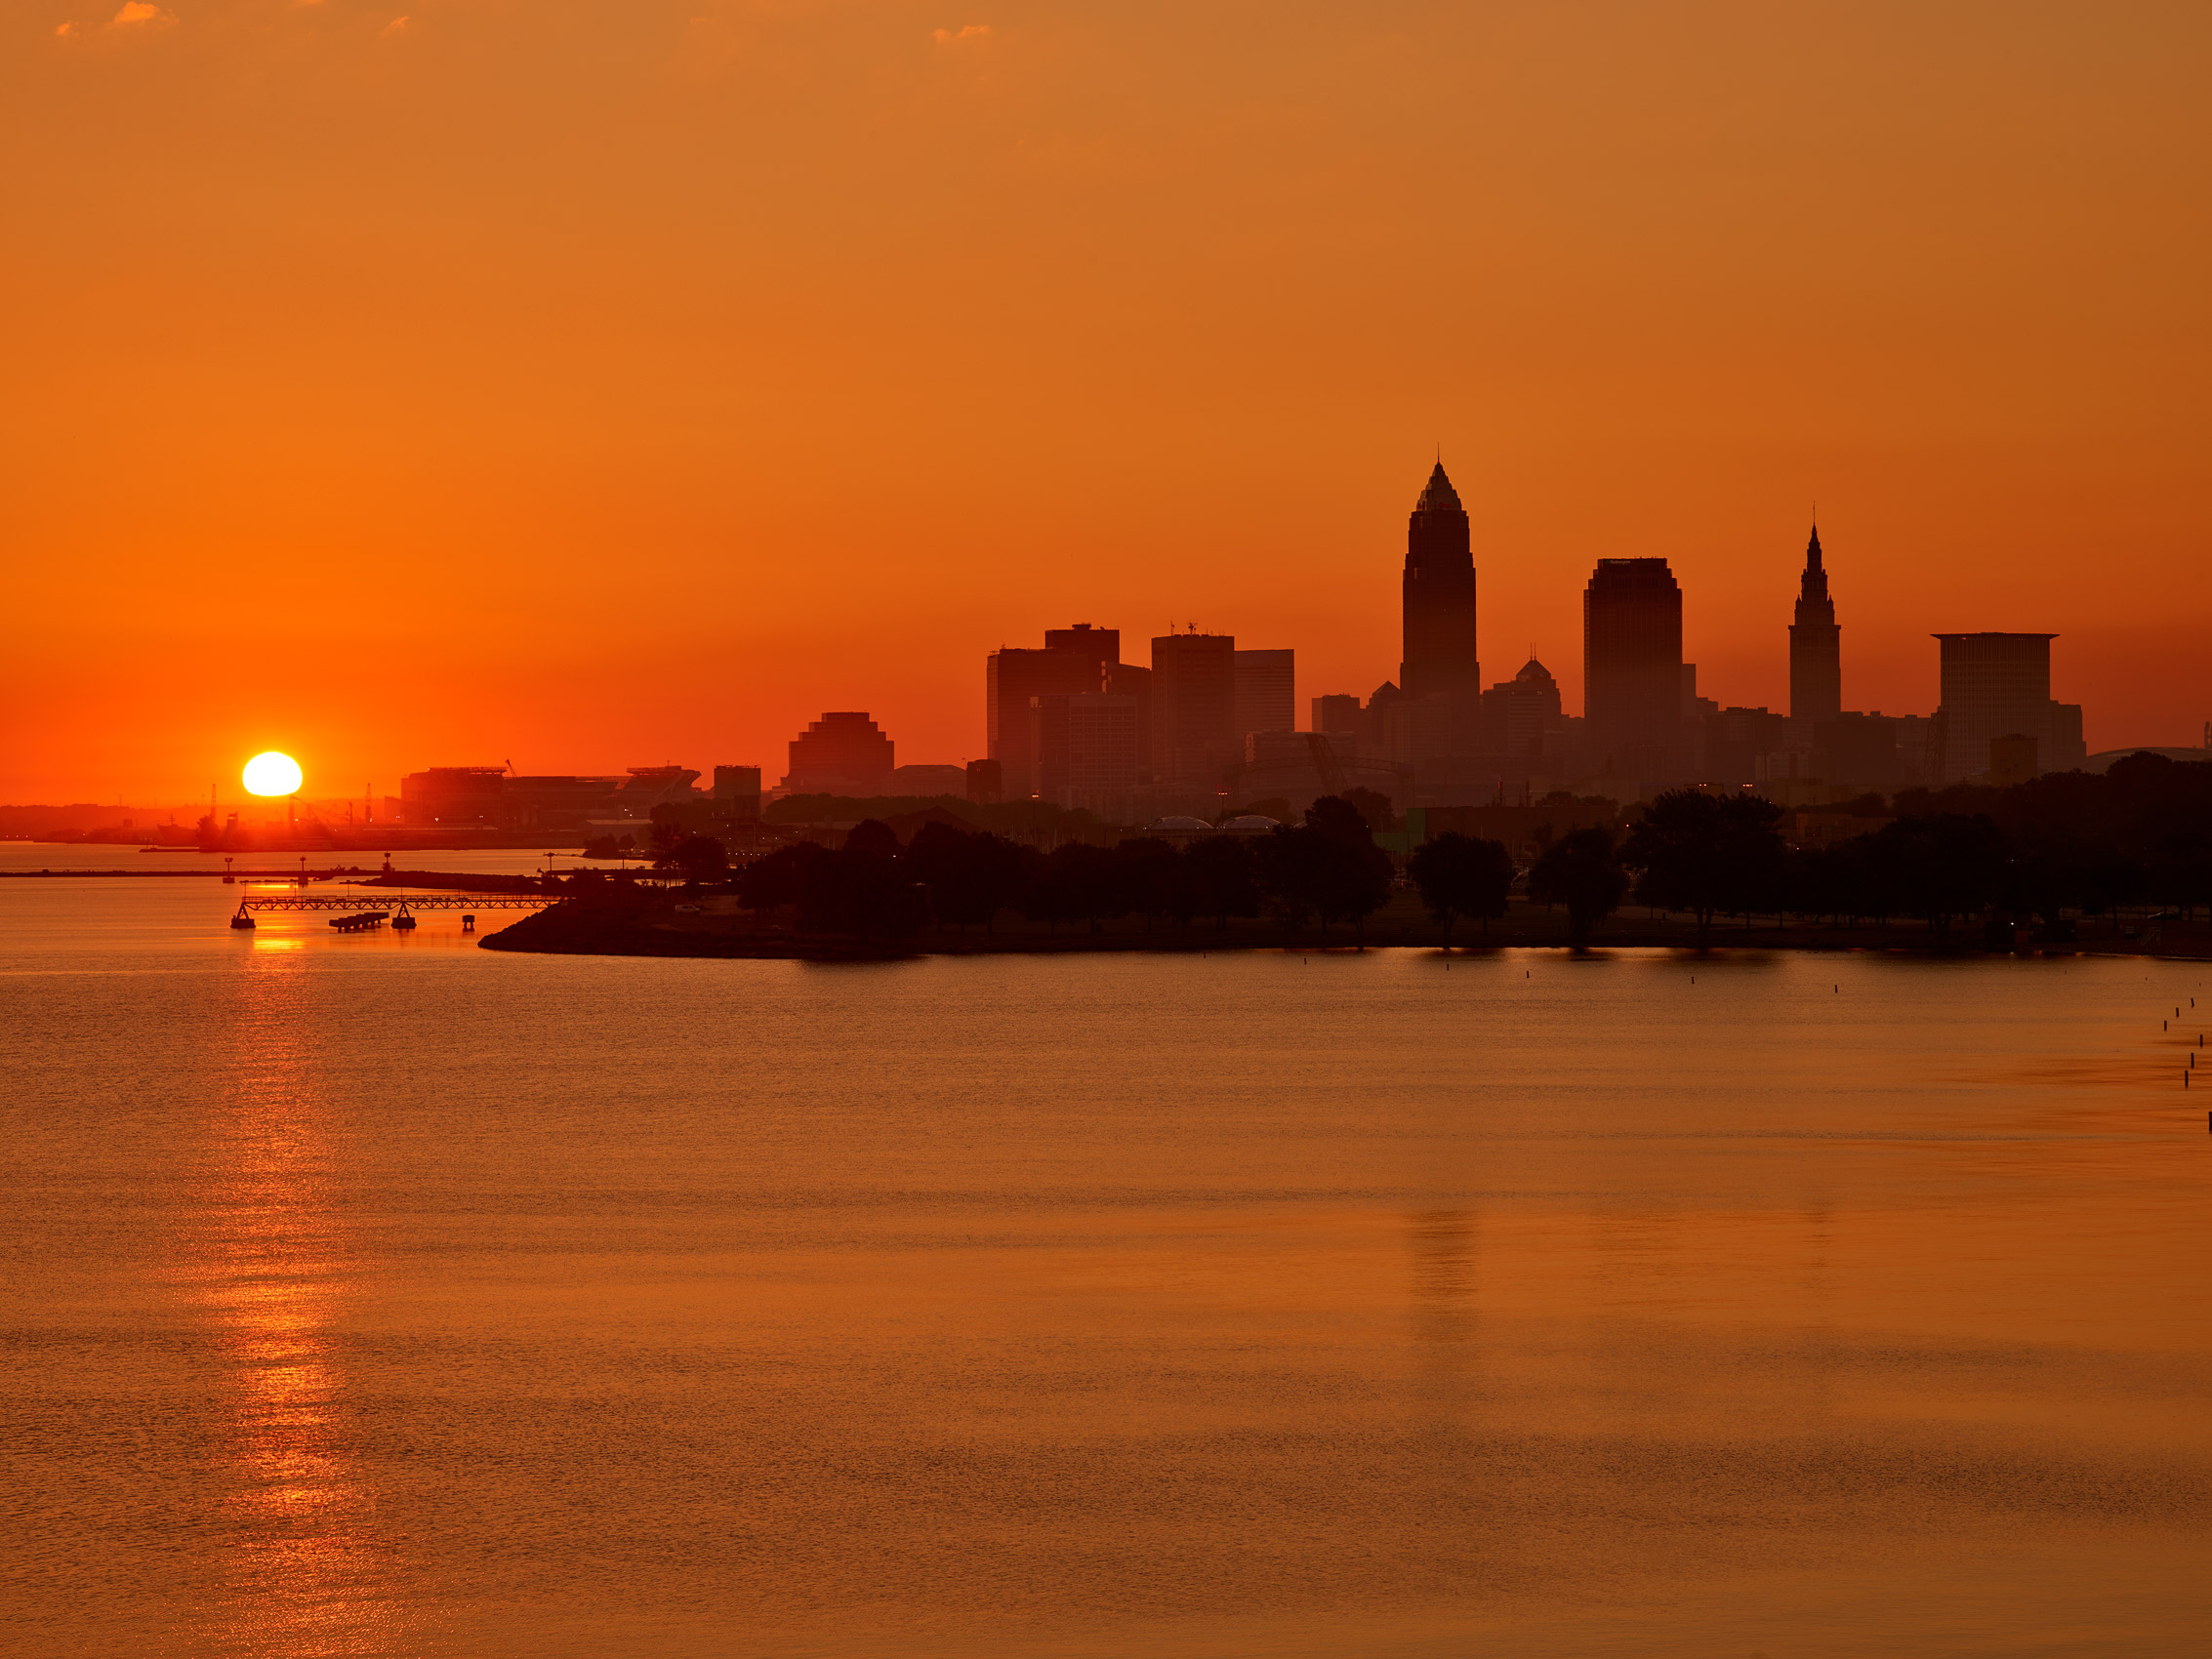 CLE_071817_045 24x18